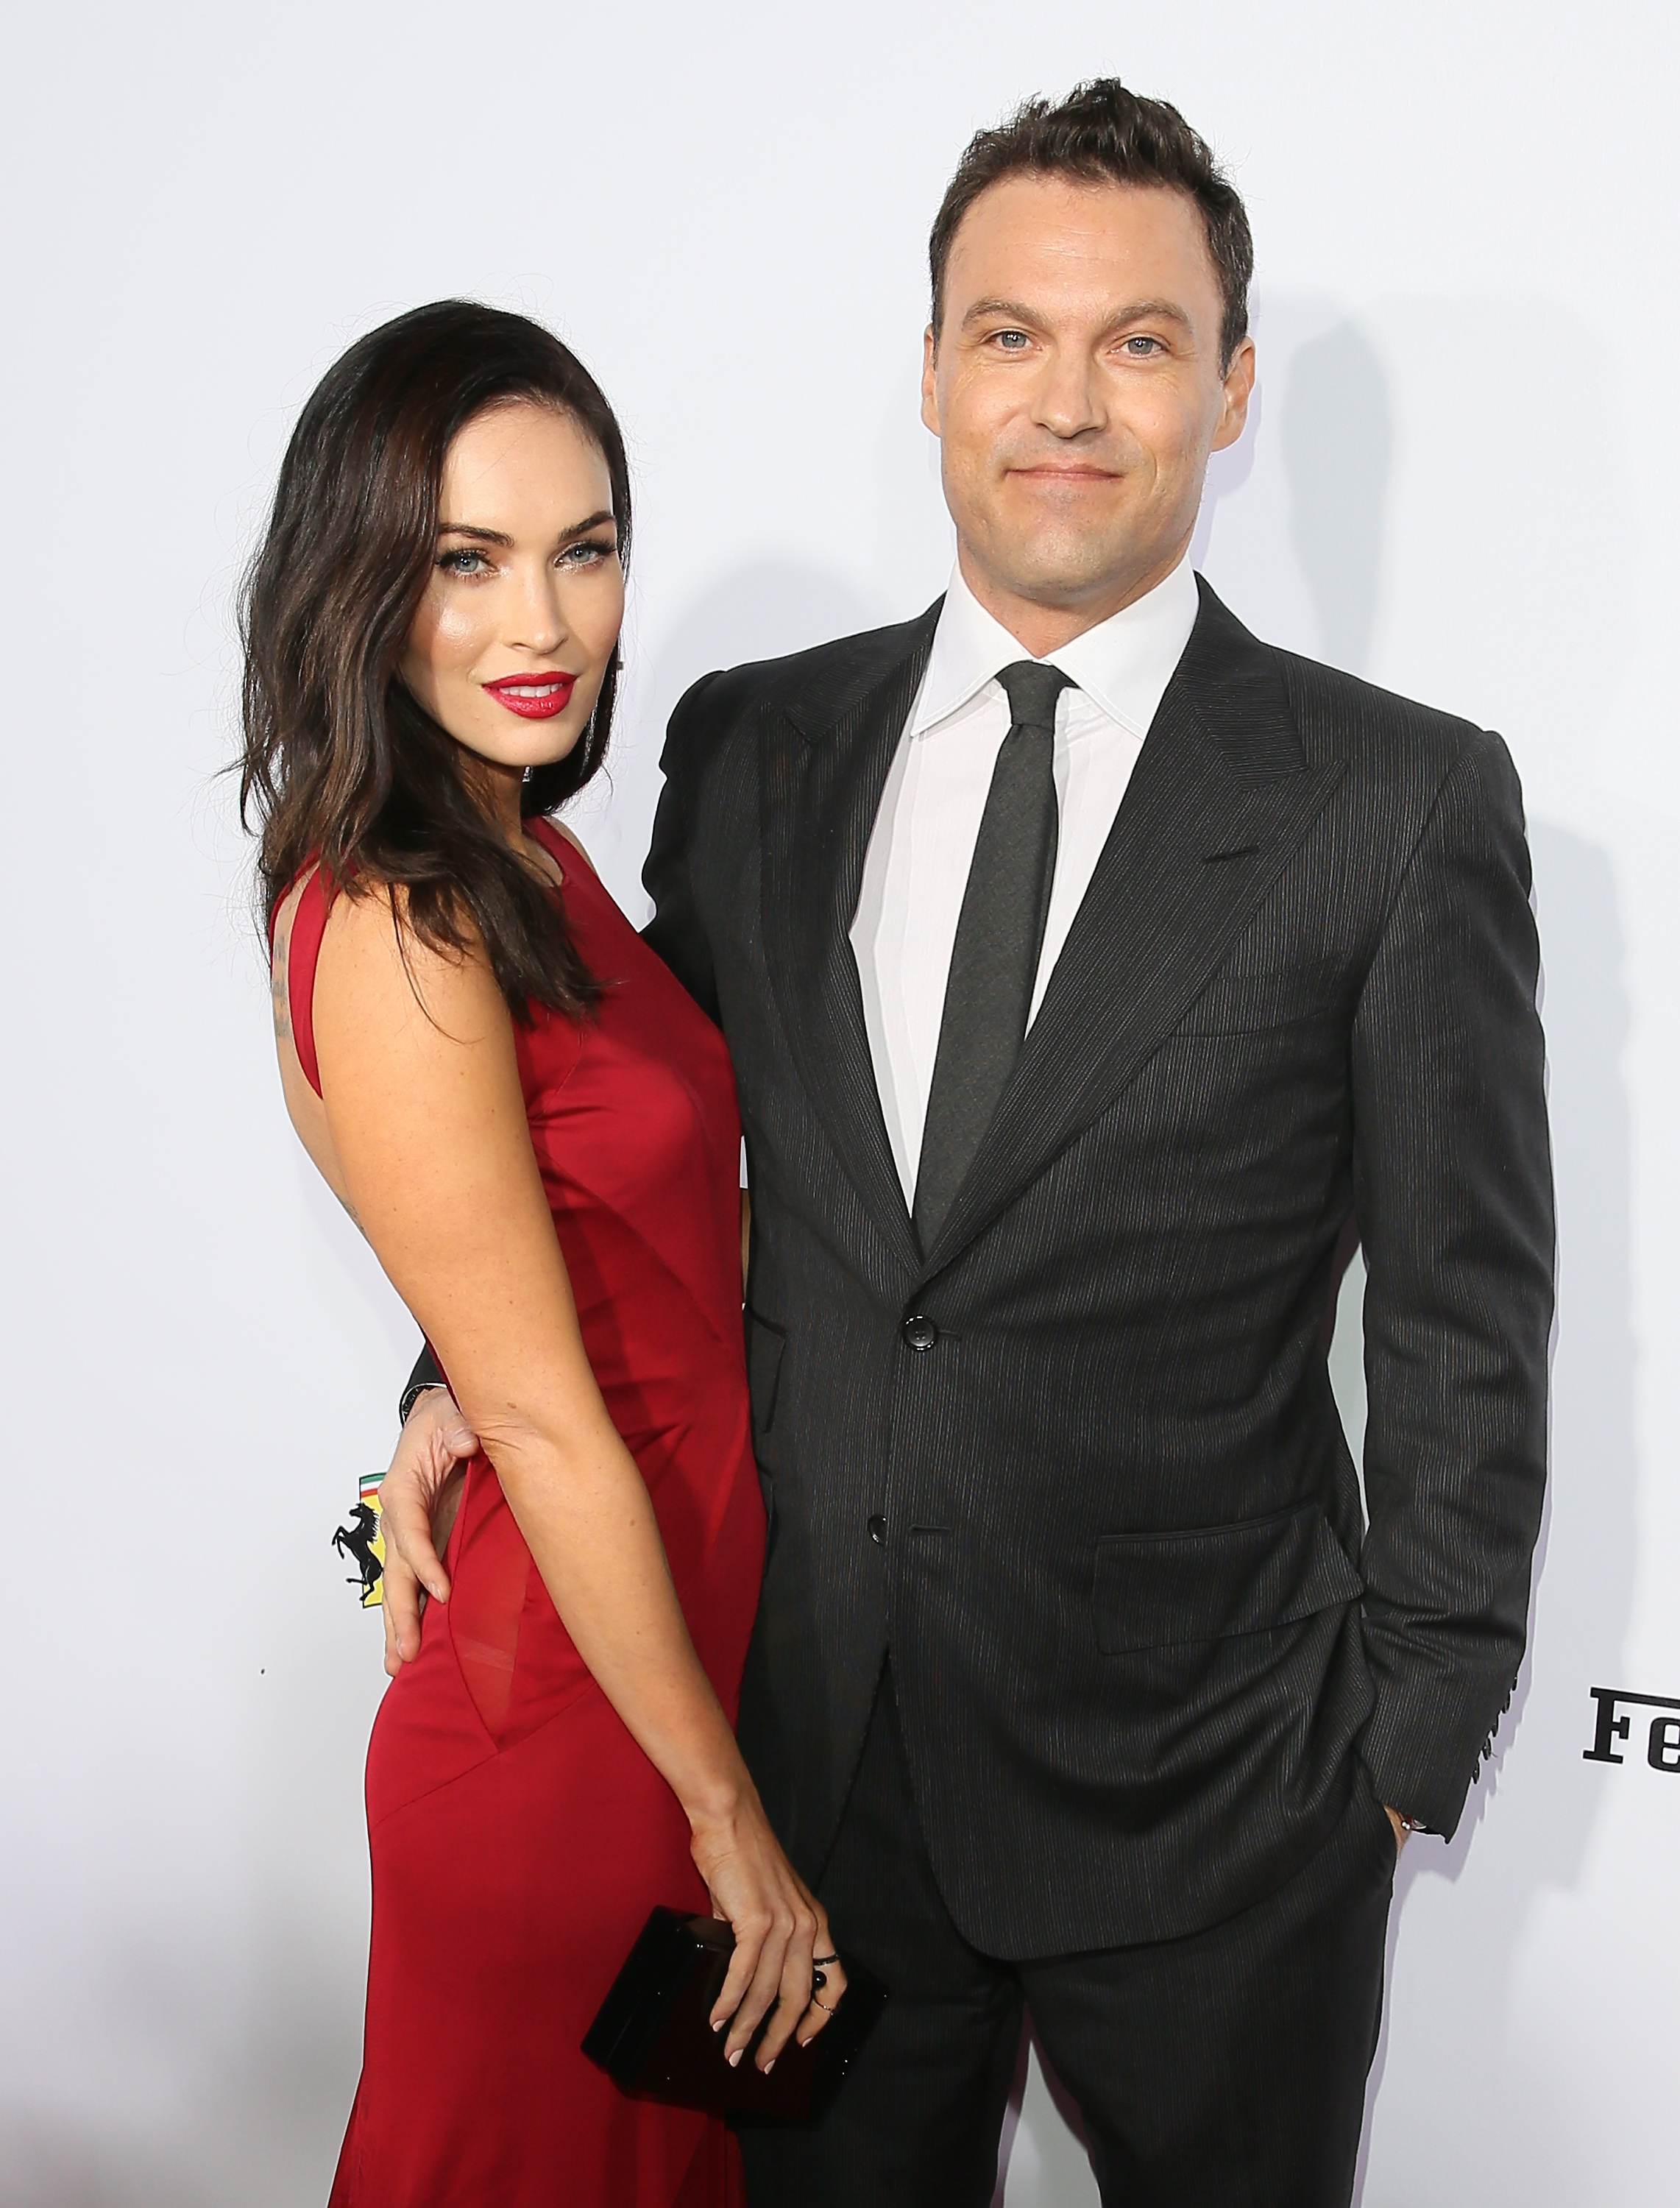 Celebrity Breakups - Every Heart-Crushing End-of-Summer ...